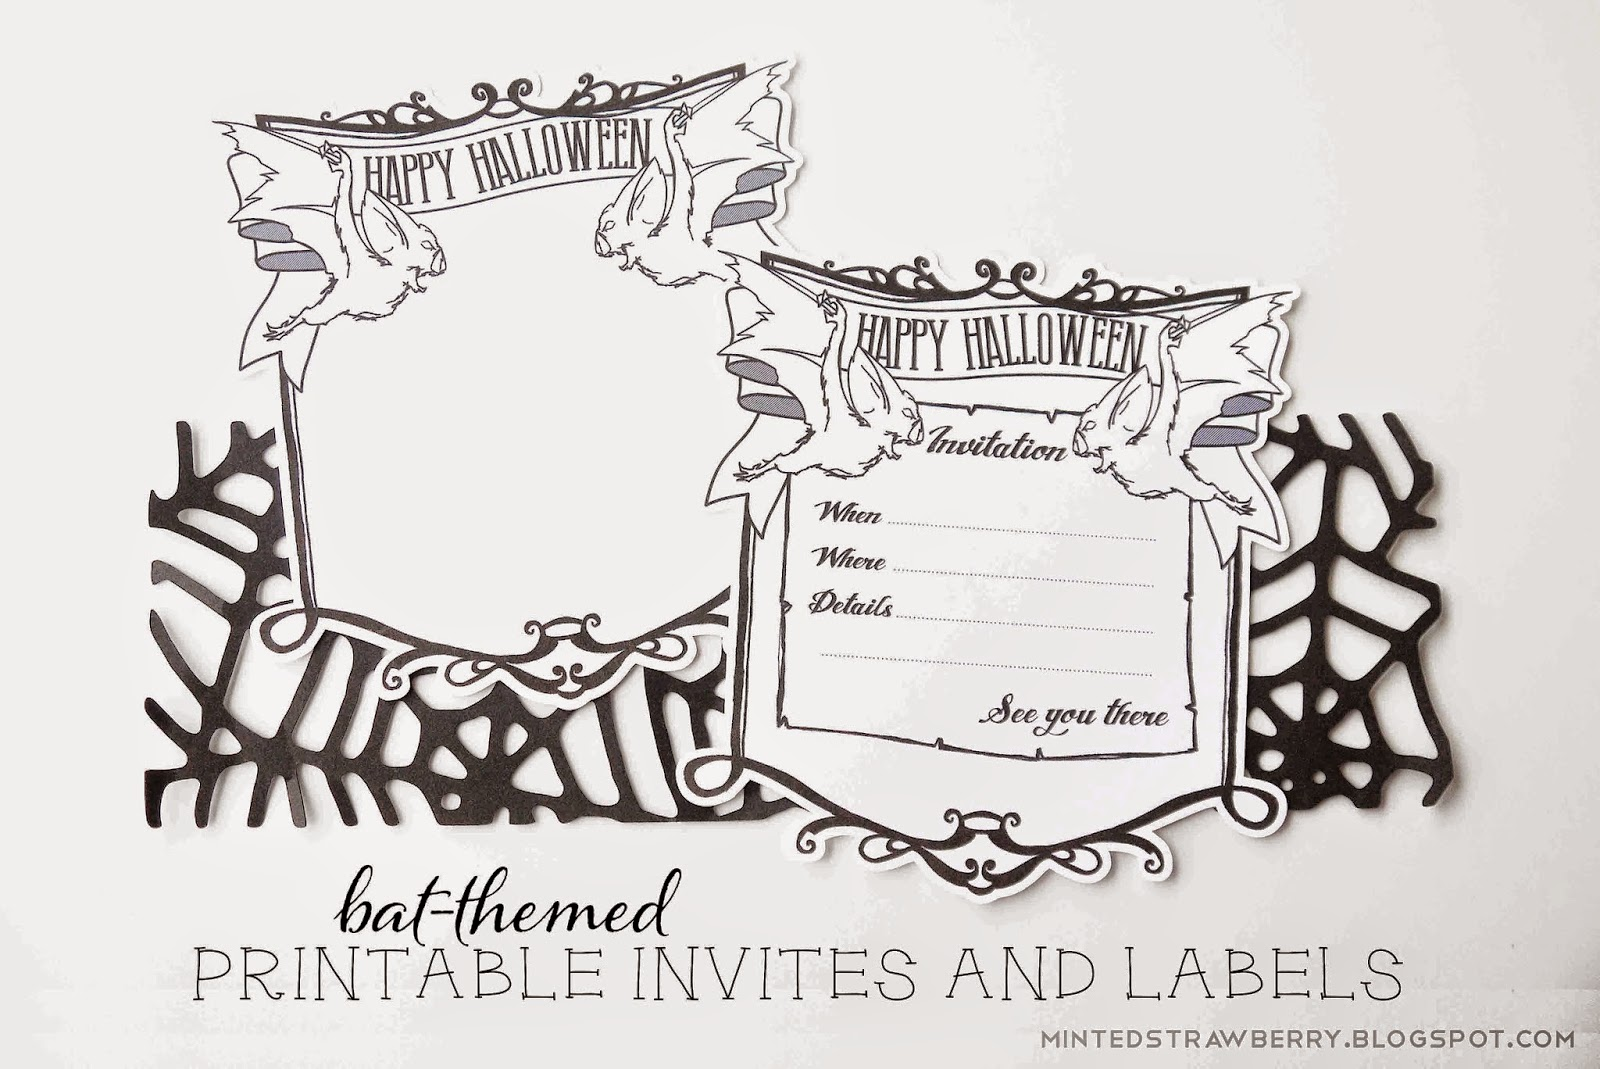 Free Printable Bat Invites And Labels